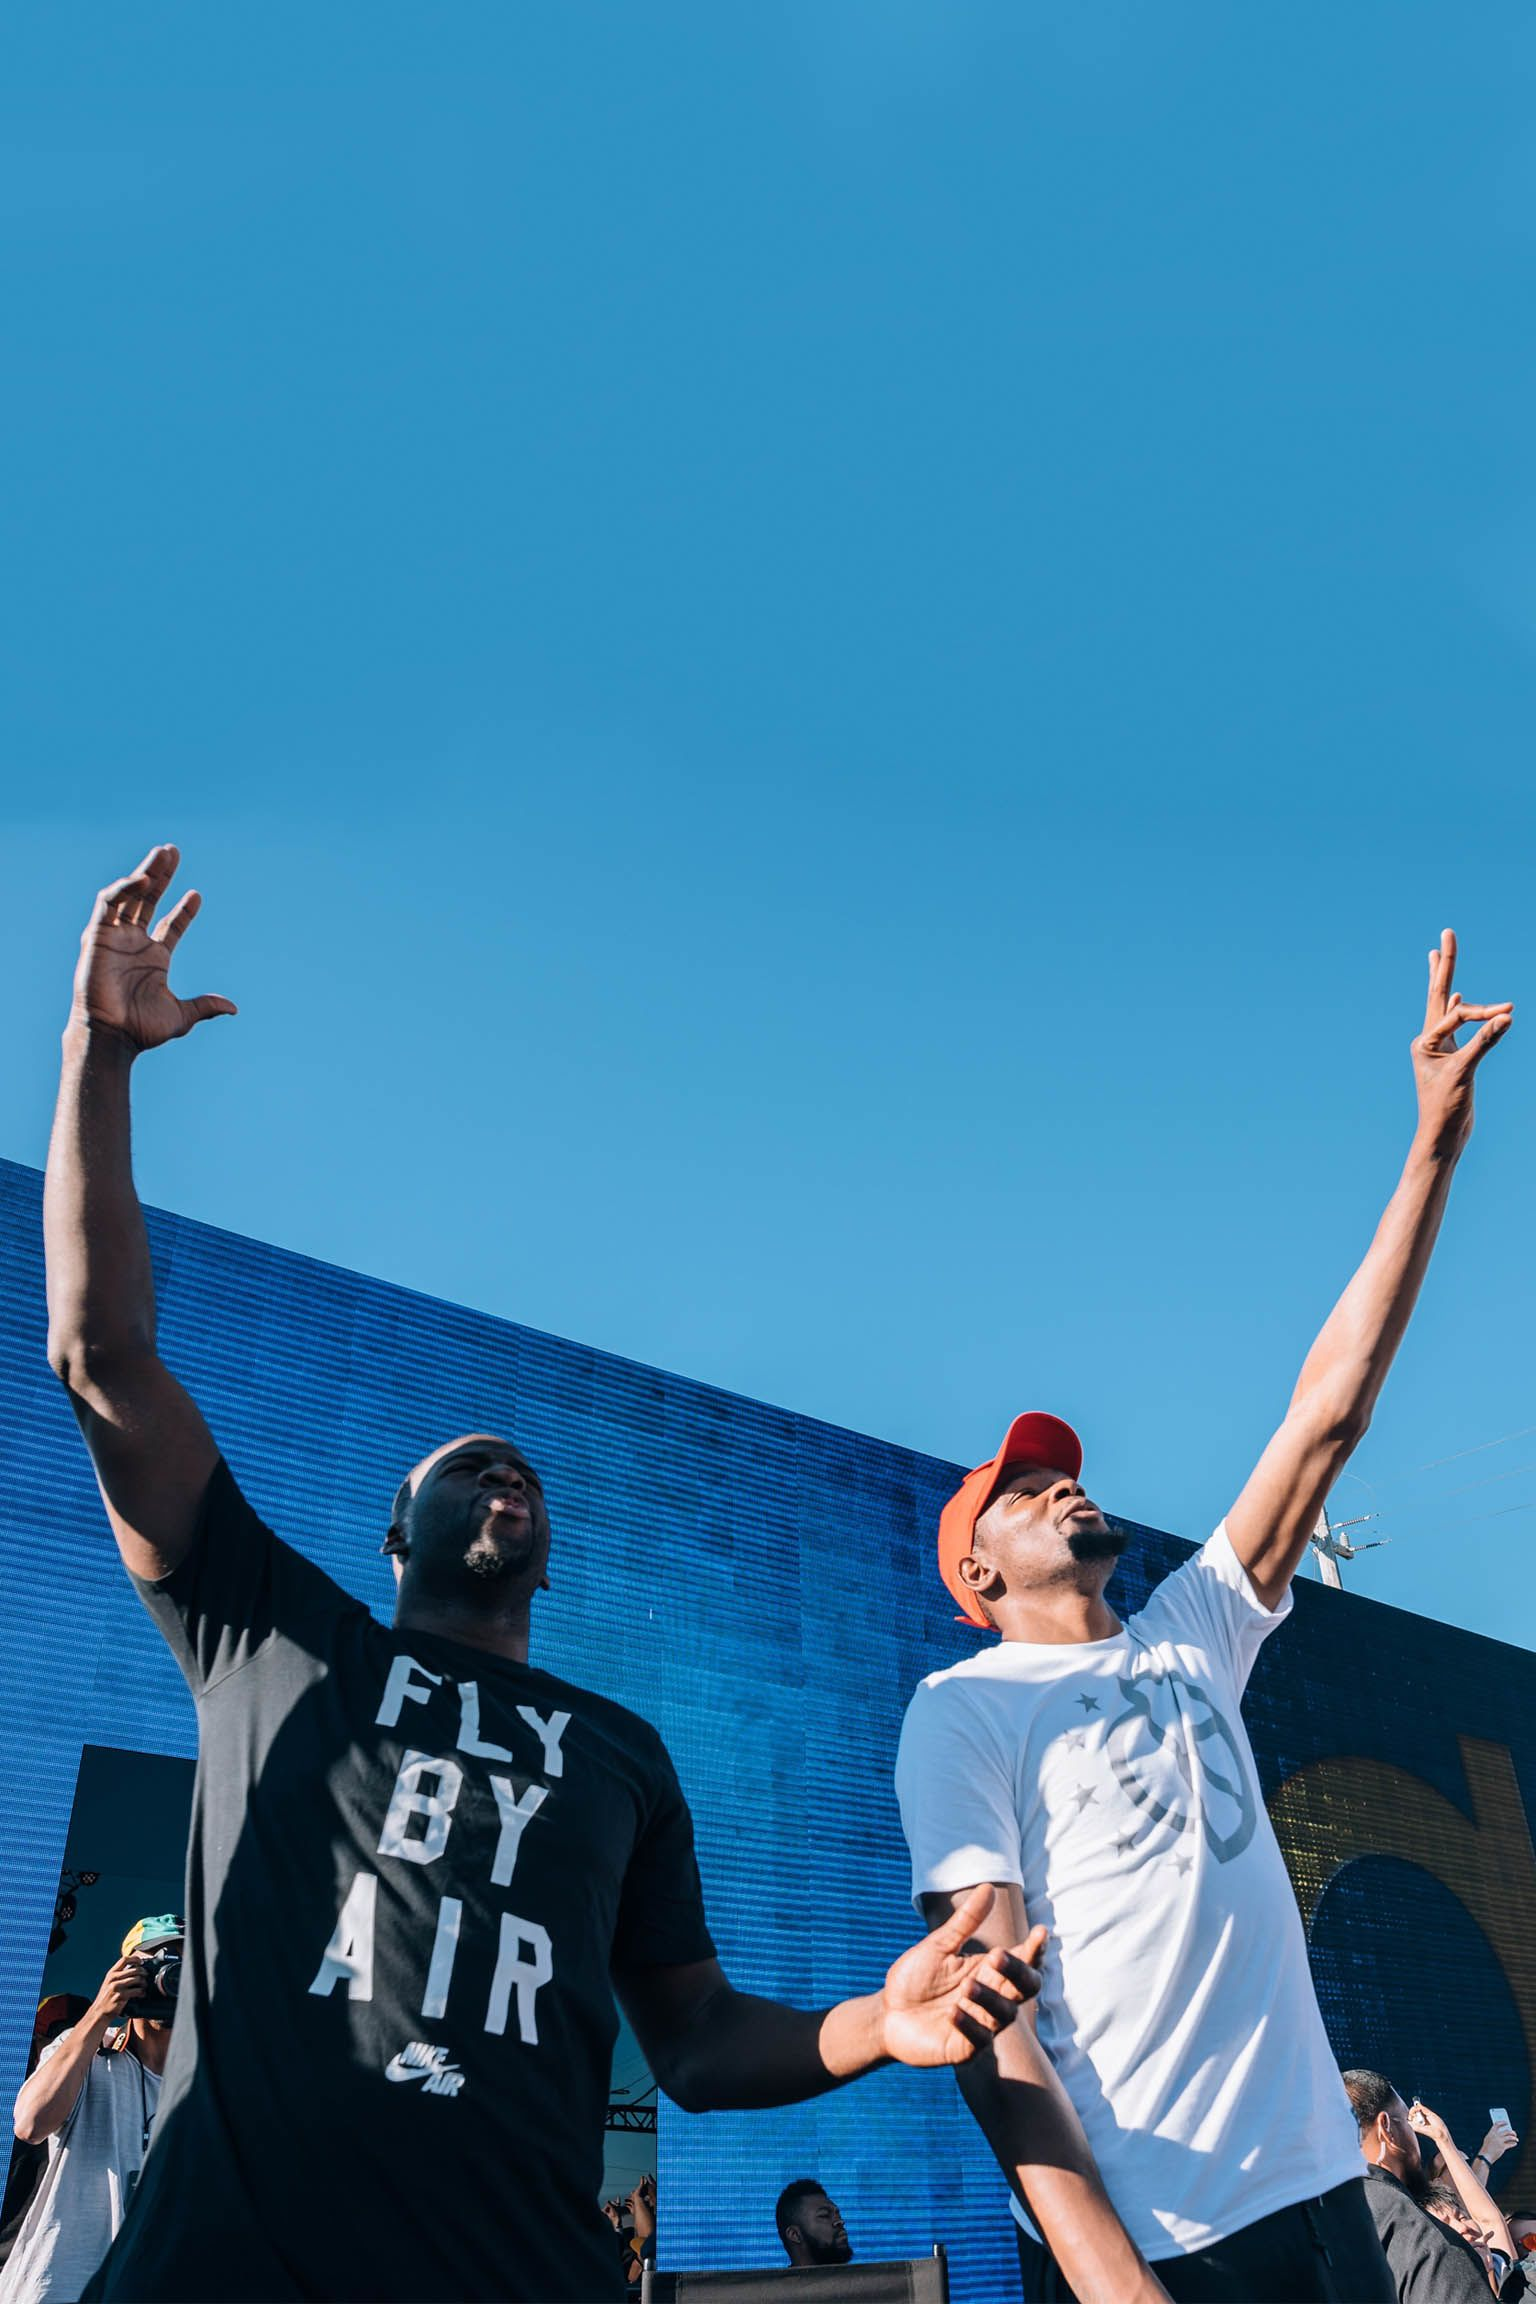 Golden Air: Welcoming KD to San Francisco